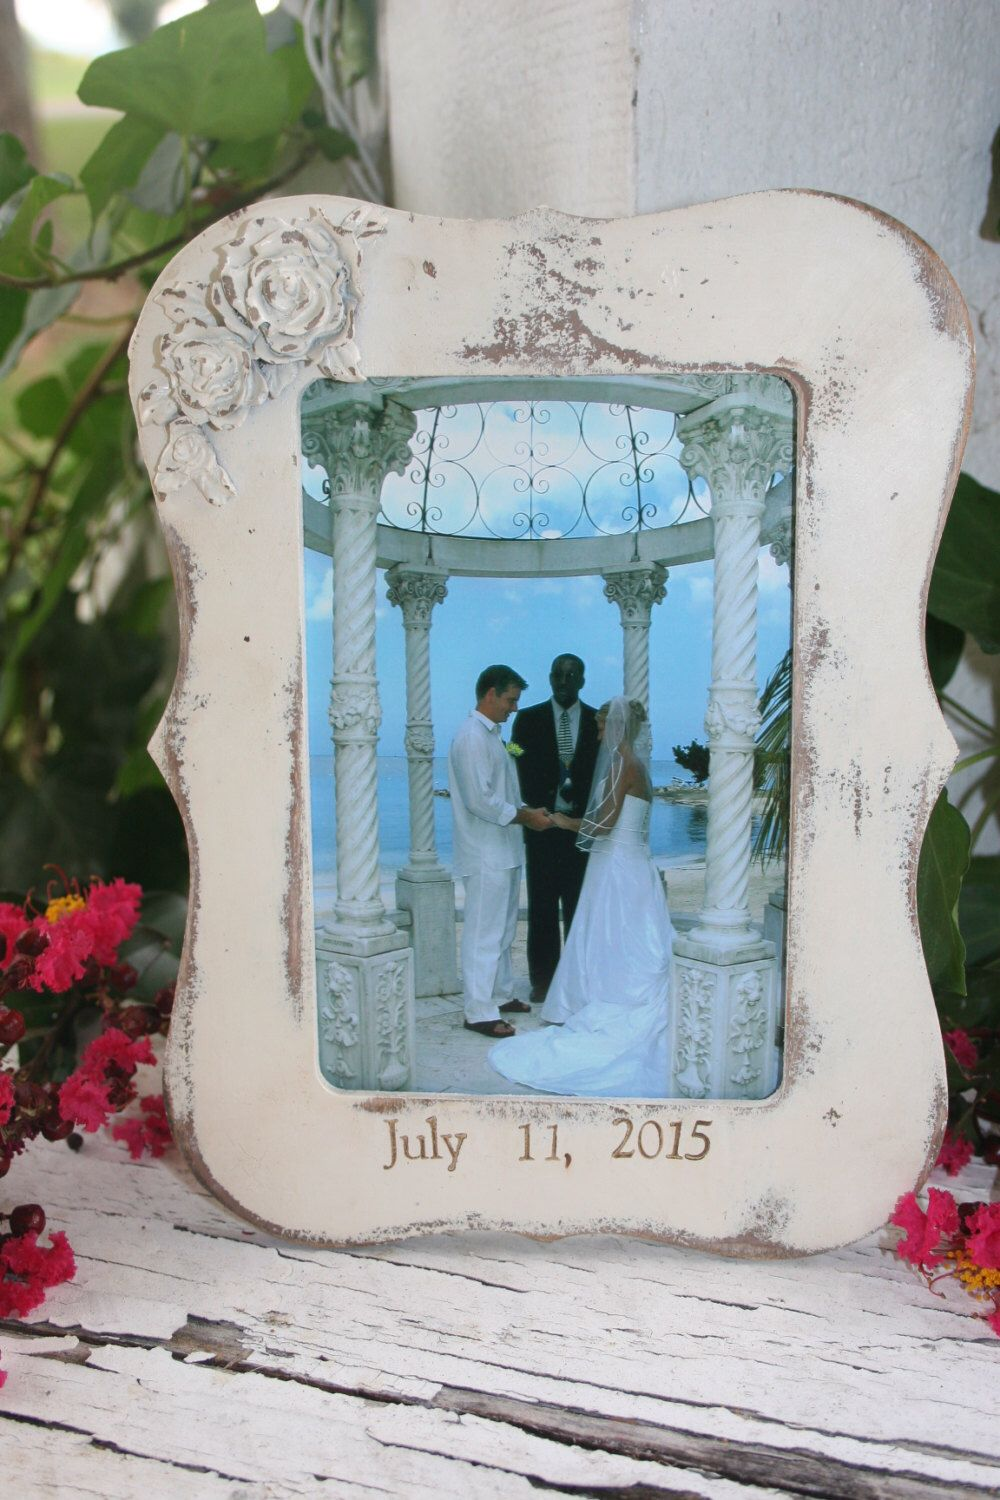 1 - Picture frame / 4 x 6 frames /  distressed frames / wood frames / personalized frames / personalized gifts / wedding gifts by RejuvenatedCreations on Etsy https://www.etsy.com/listing/243061589/1-picture-frame-4-x-6-frames-distressed